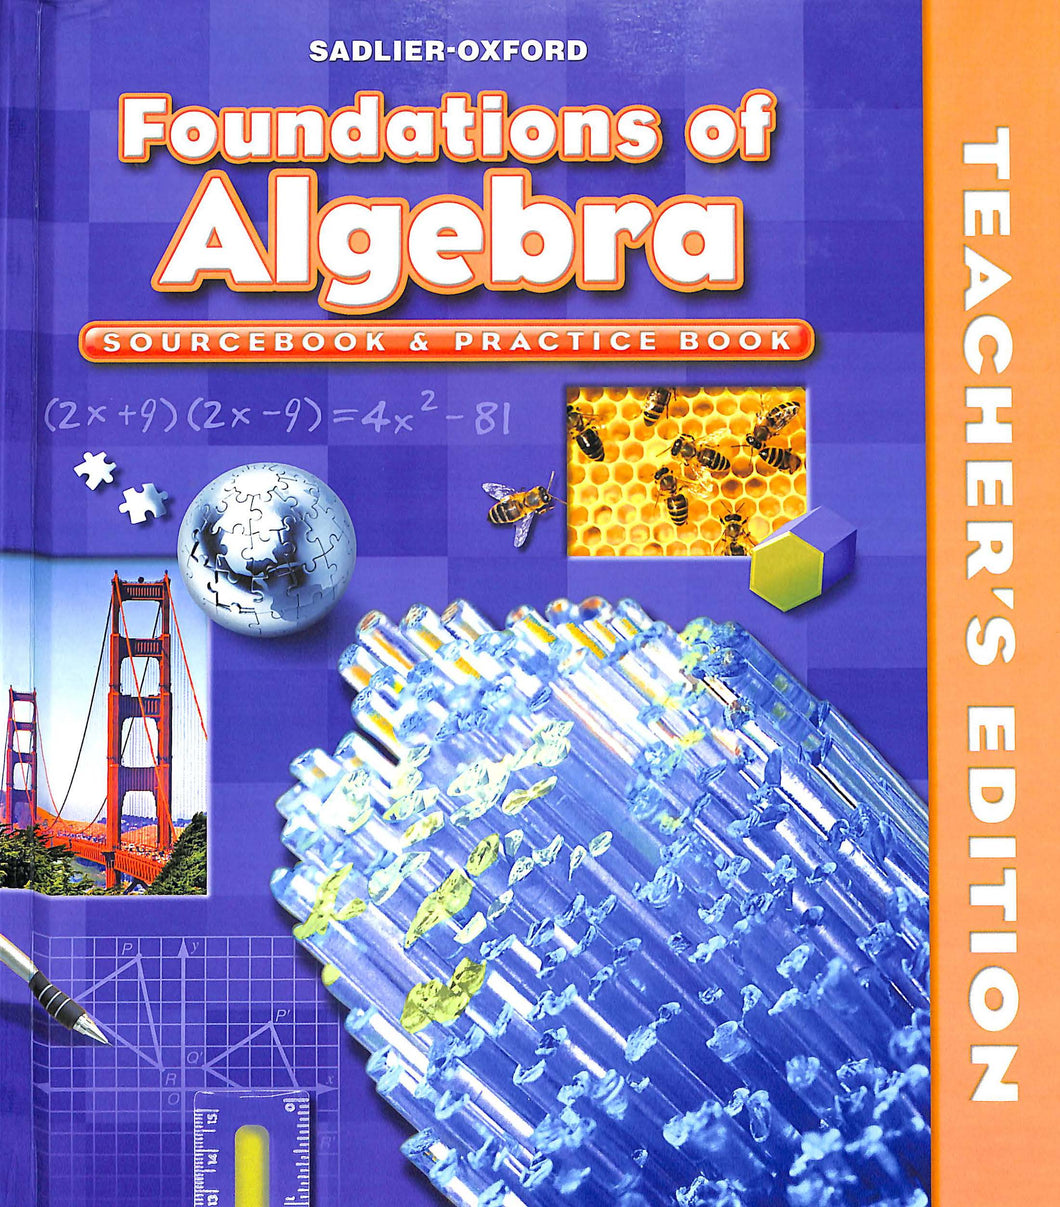 Foundations of Algebra Teacher Manual